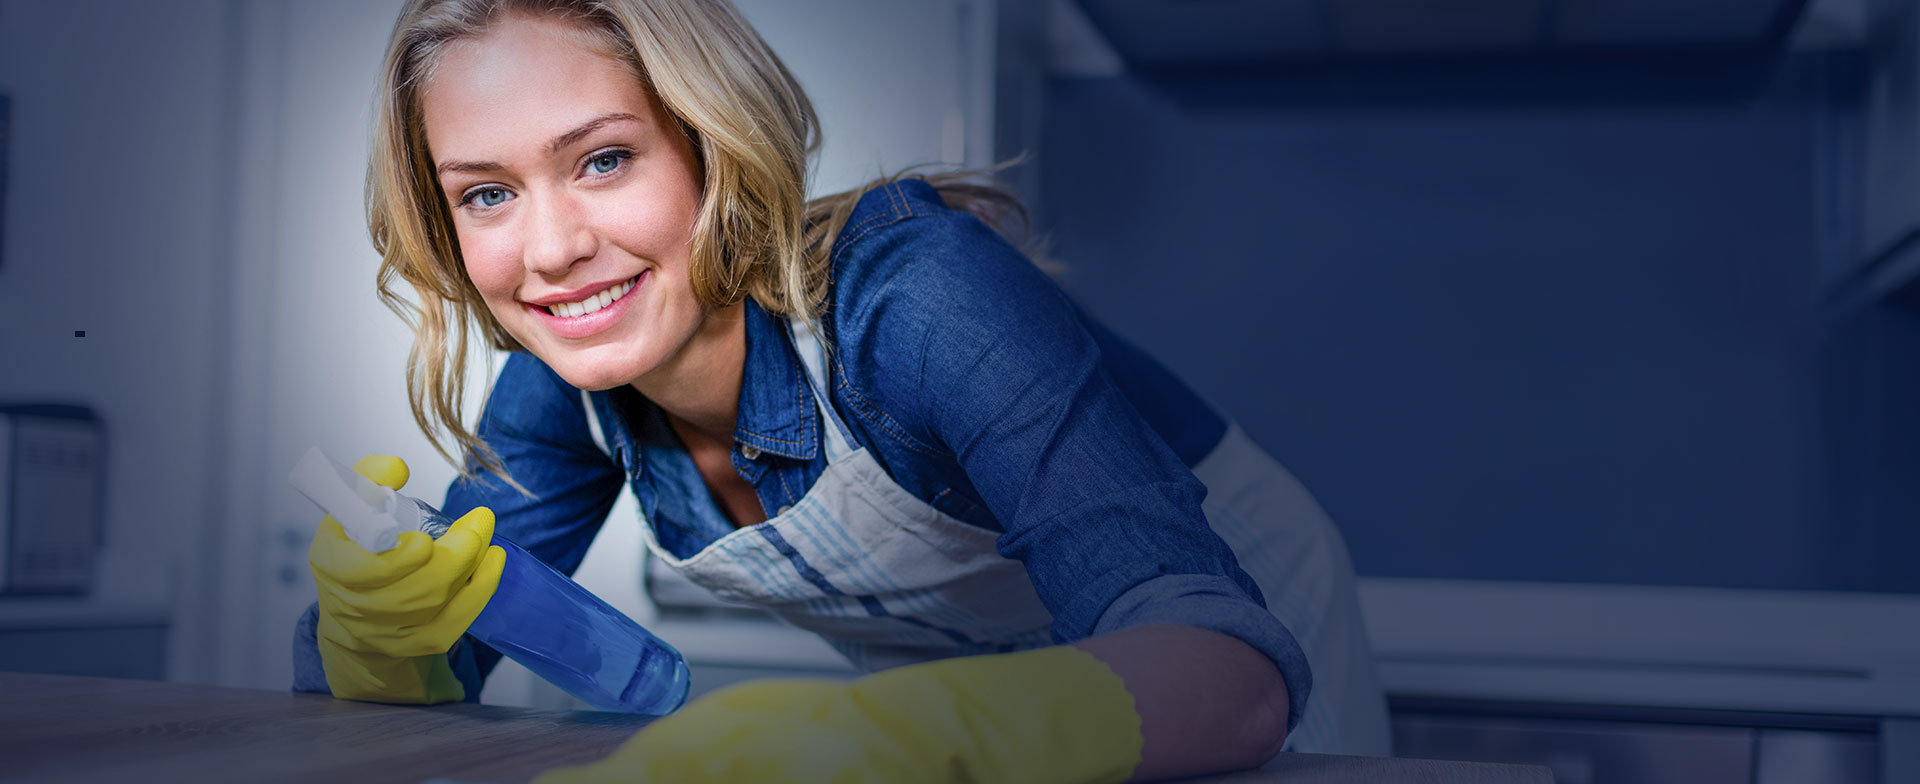 Carpet Cleaning Wibsey